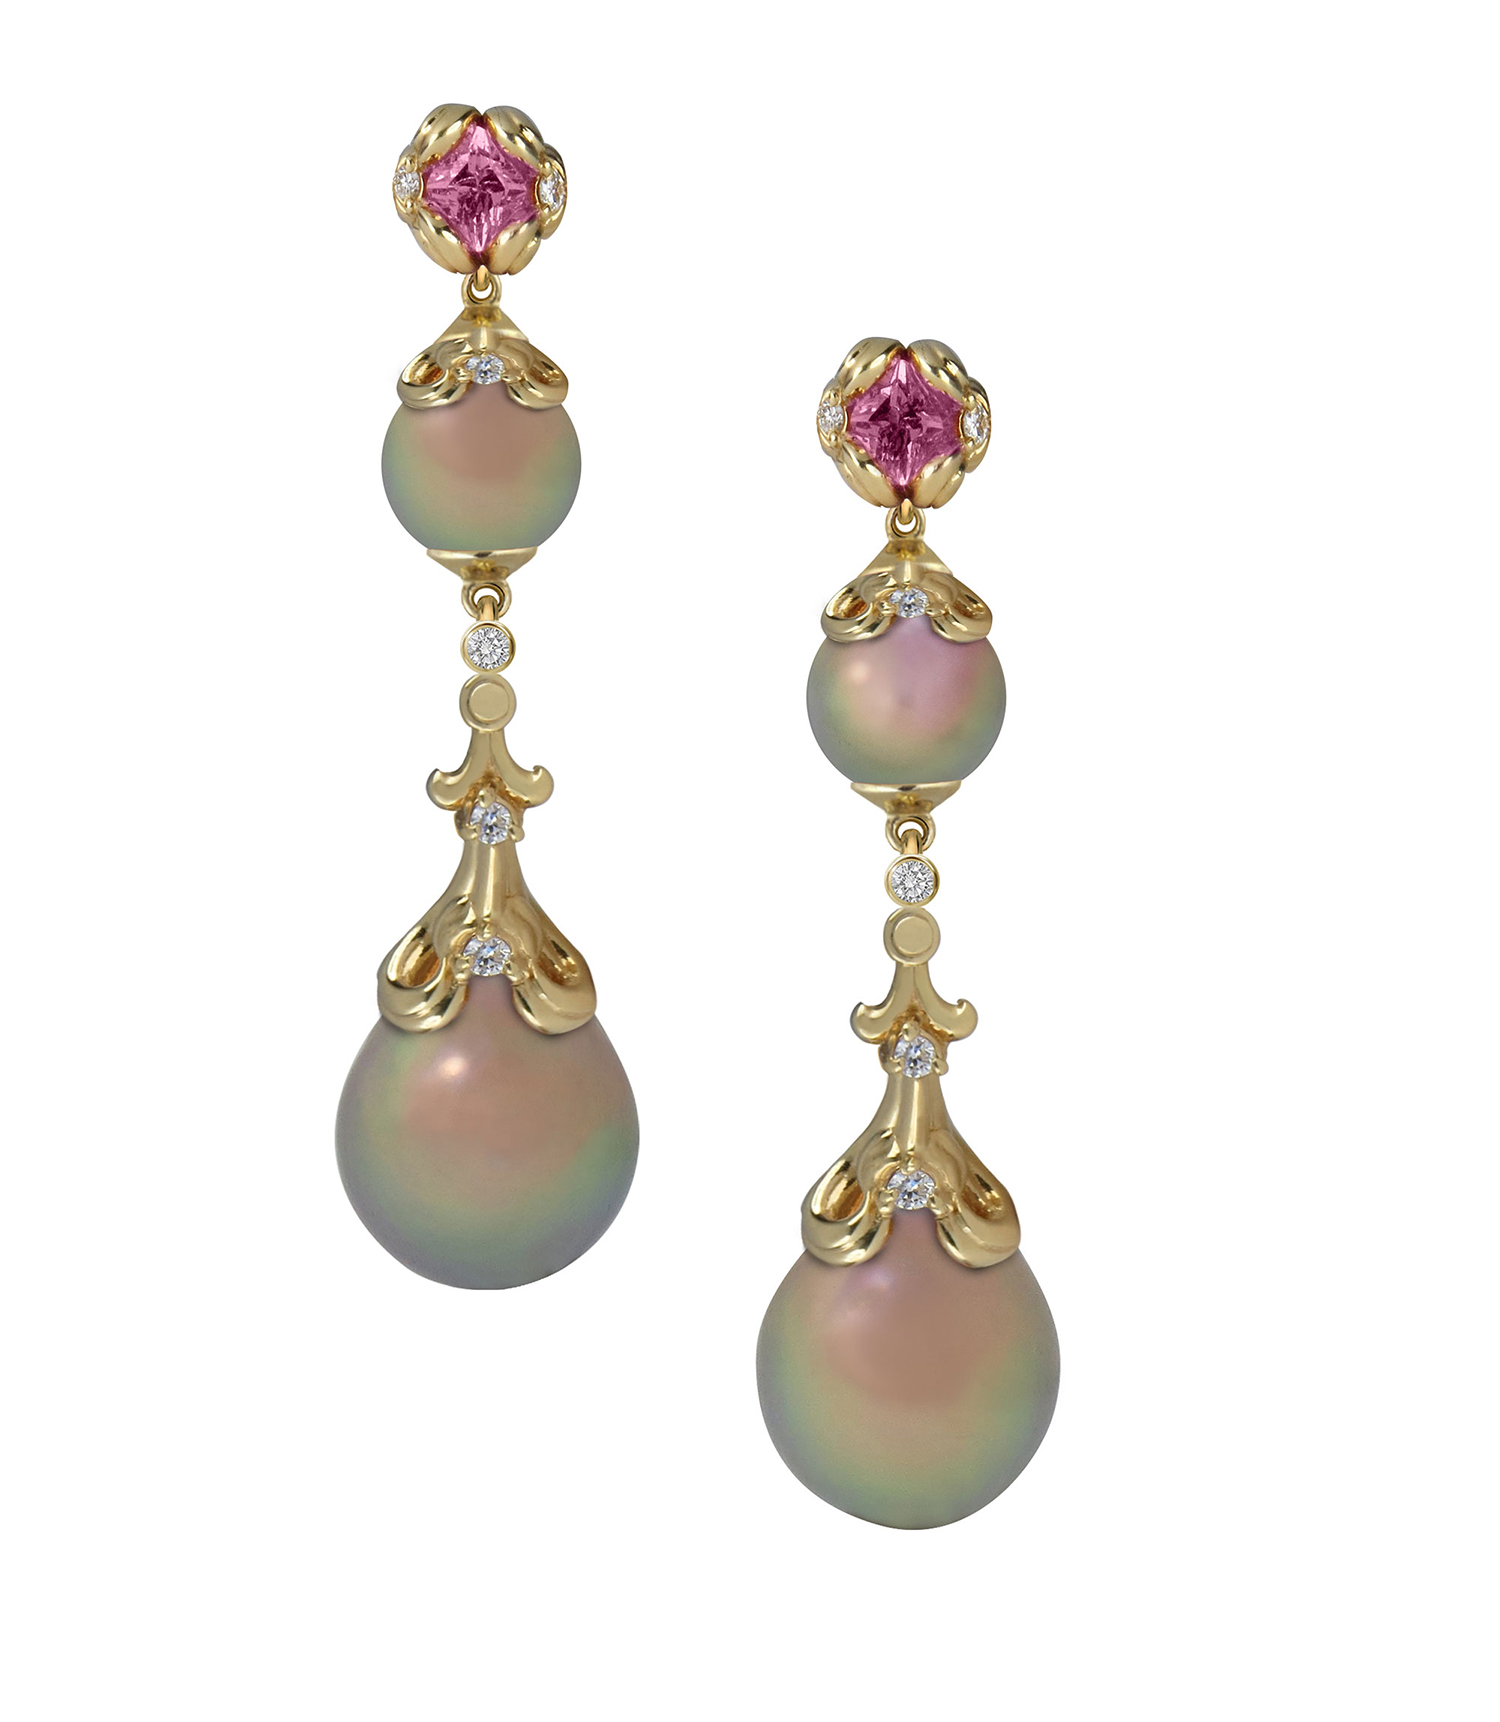 INSTORE Design Awards 2021 – Pearl Jewelry Under $5,000